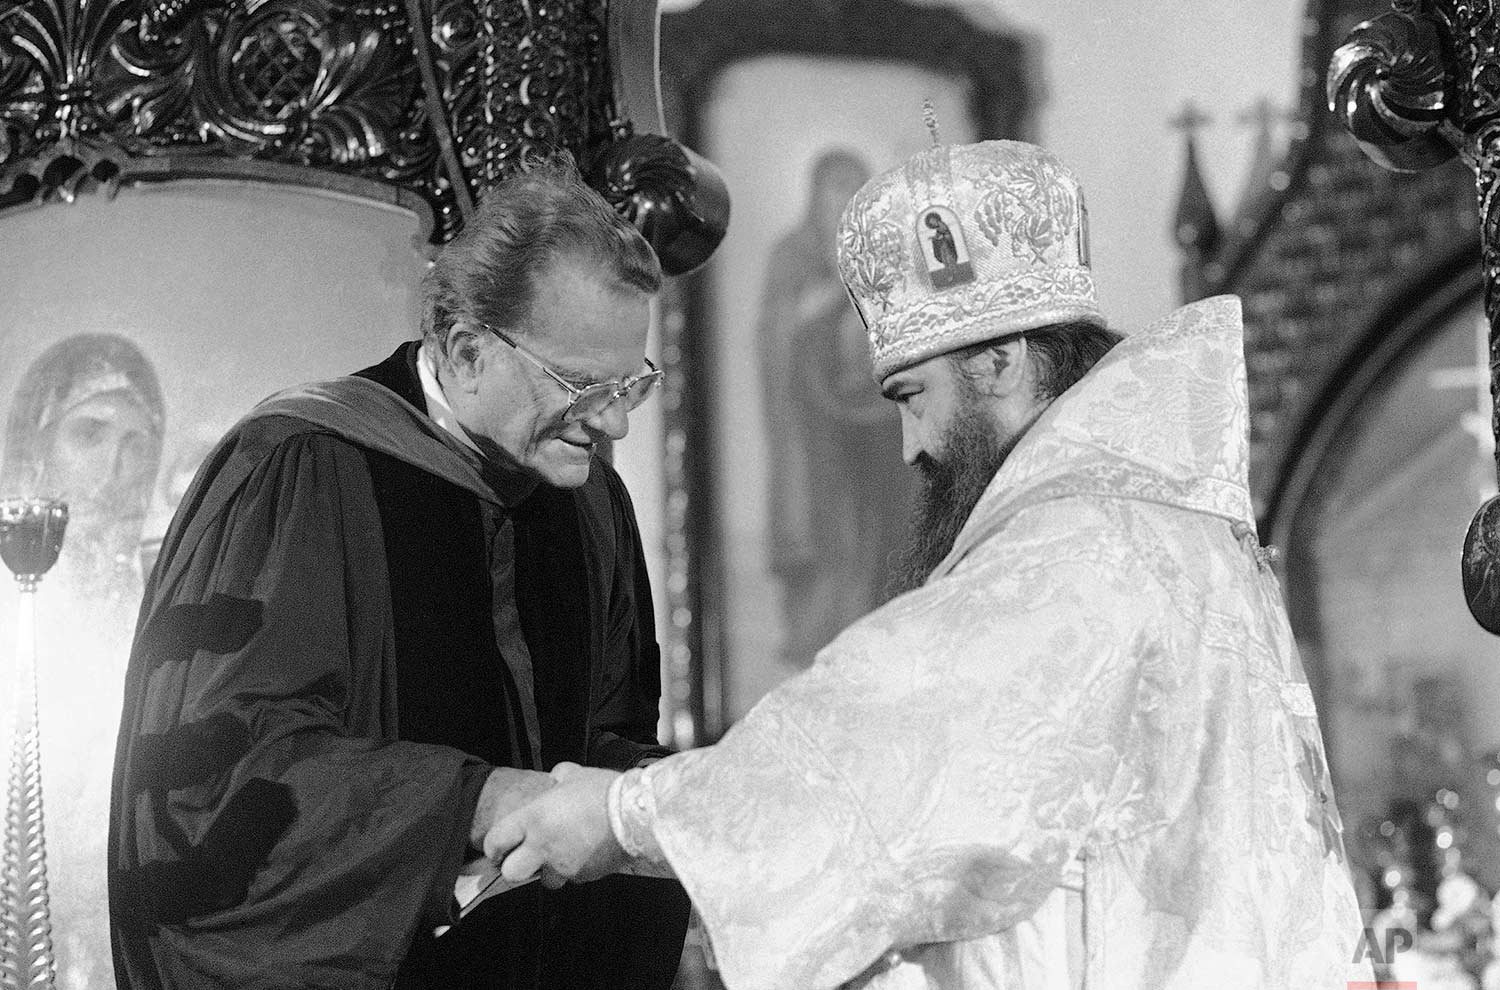 Metropolitan Filaret of Moscow, right, greets the Rev. Dr. Billy Graham just before the American evangelist addressed 300 Russian Orthodox members of the Church of the Resurrection in Moscow Sunday, Sept. 16, 1984. (AP Photo/Boris Yurchenko)